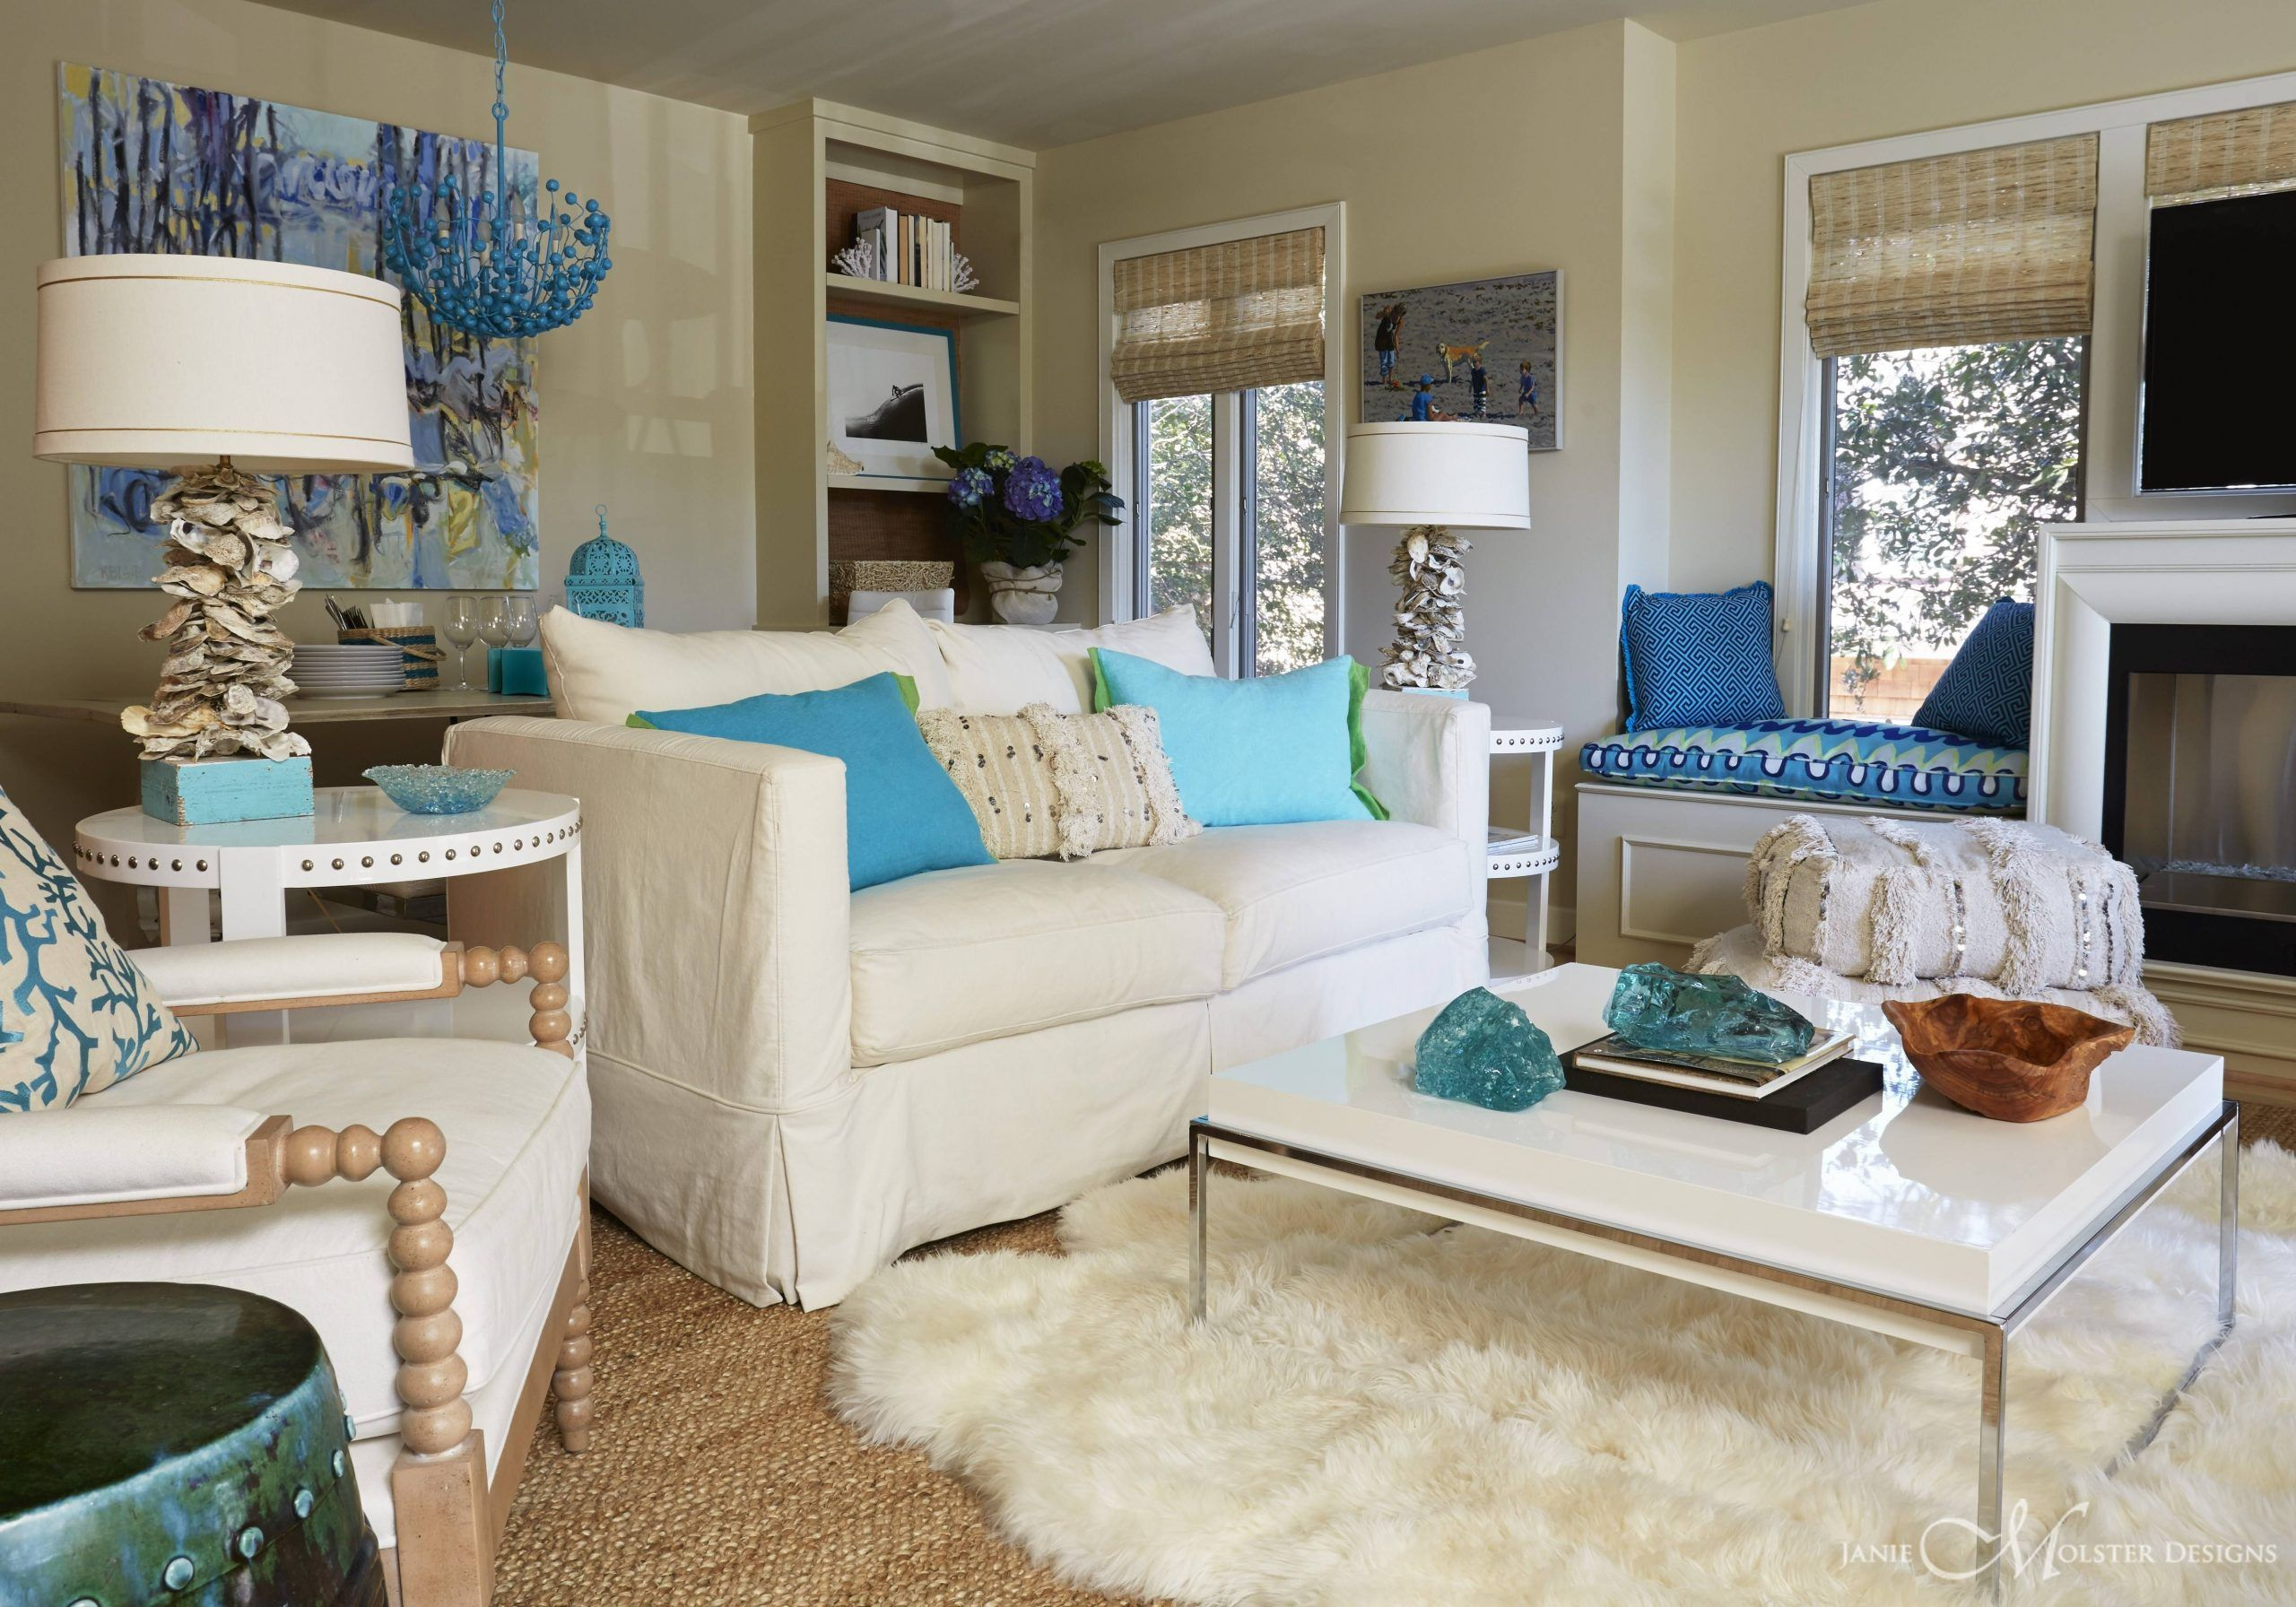 Red And Turquoise Living Room Ideas Trend Teal Cream Living Room Ideas Dark Red Barb Homes In 2020 Living Room Turquoise Turquoise Living Room Decor Turquoise Room #teal #and #cream #living #room